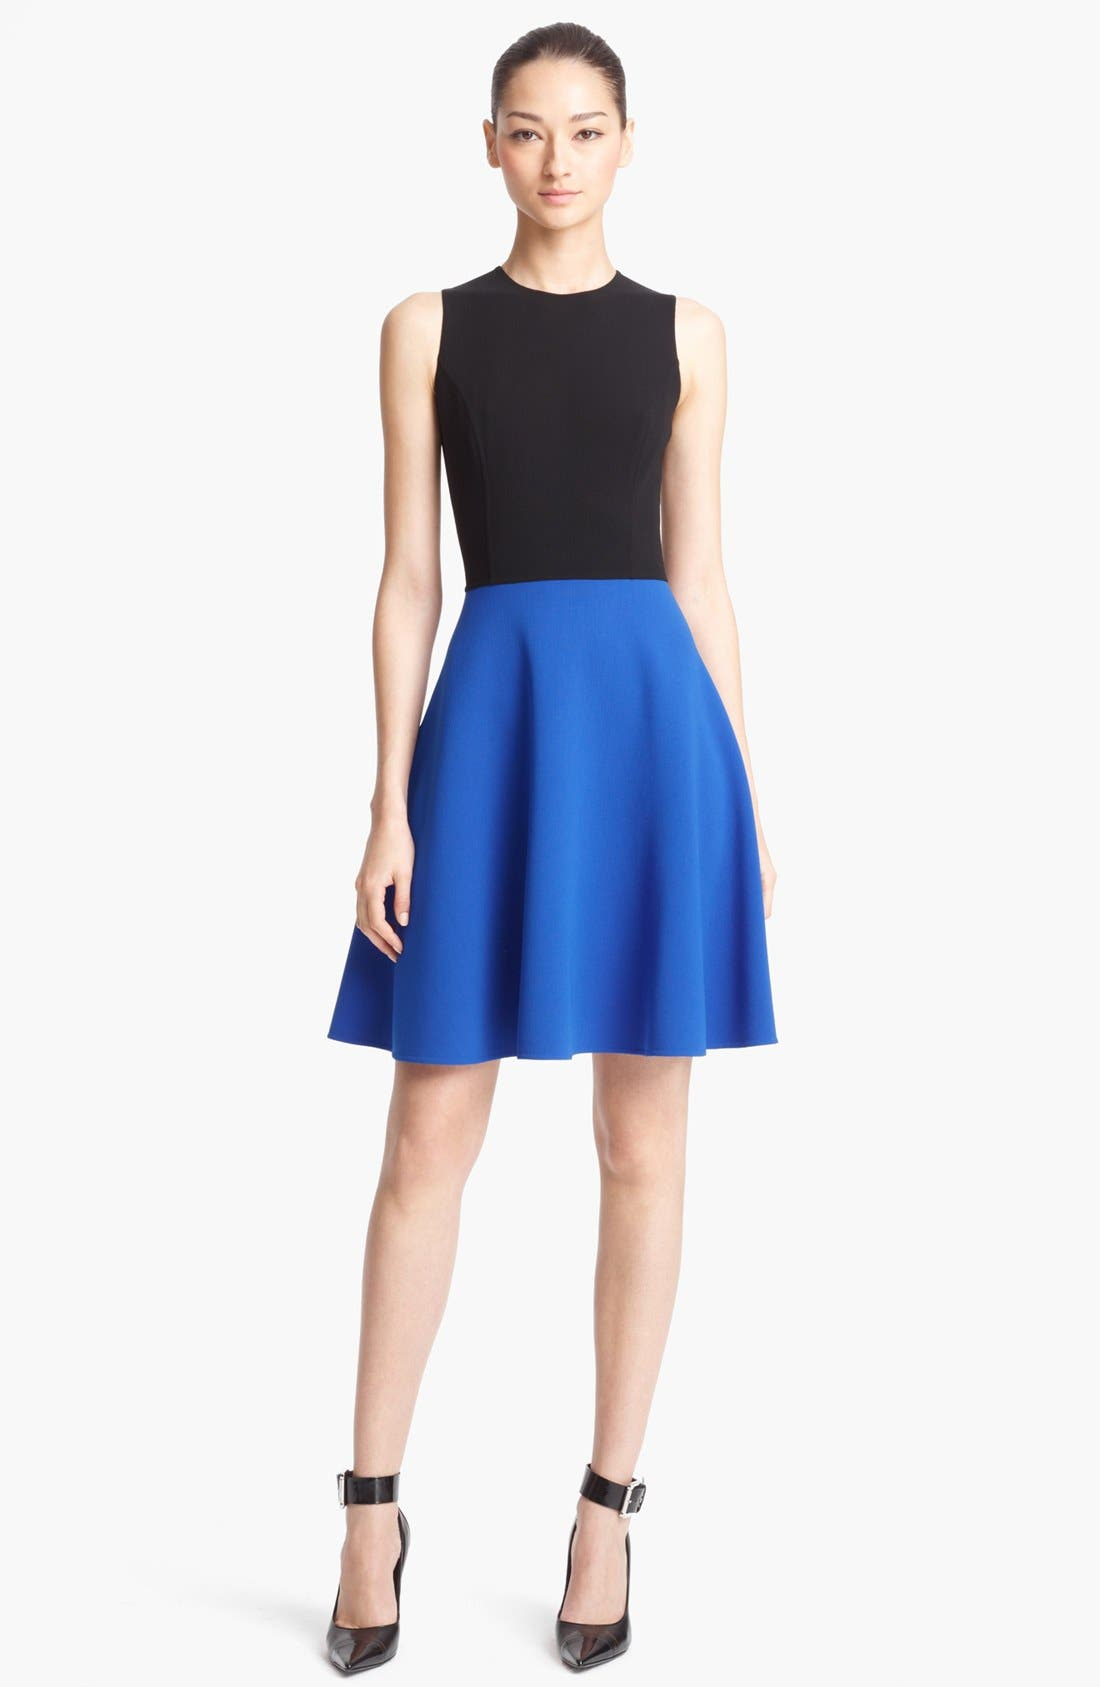 Alternate Image 1 Selected - Michael Kors Wool Crepe Dress